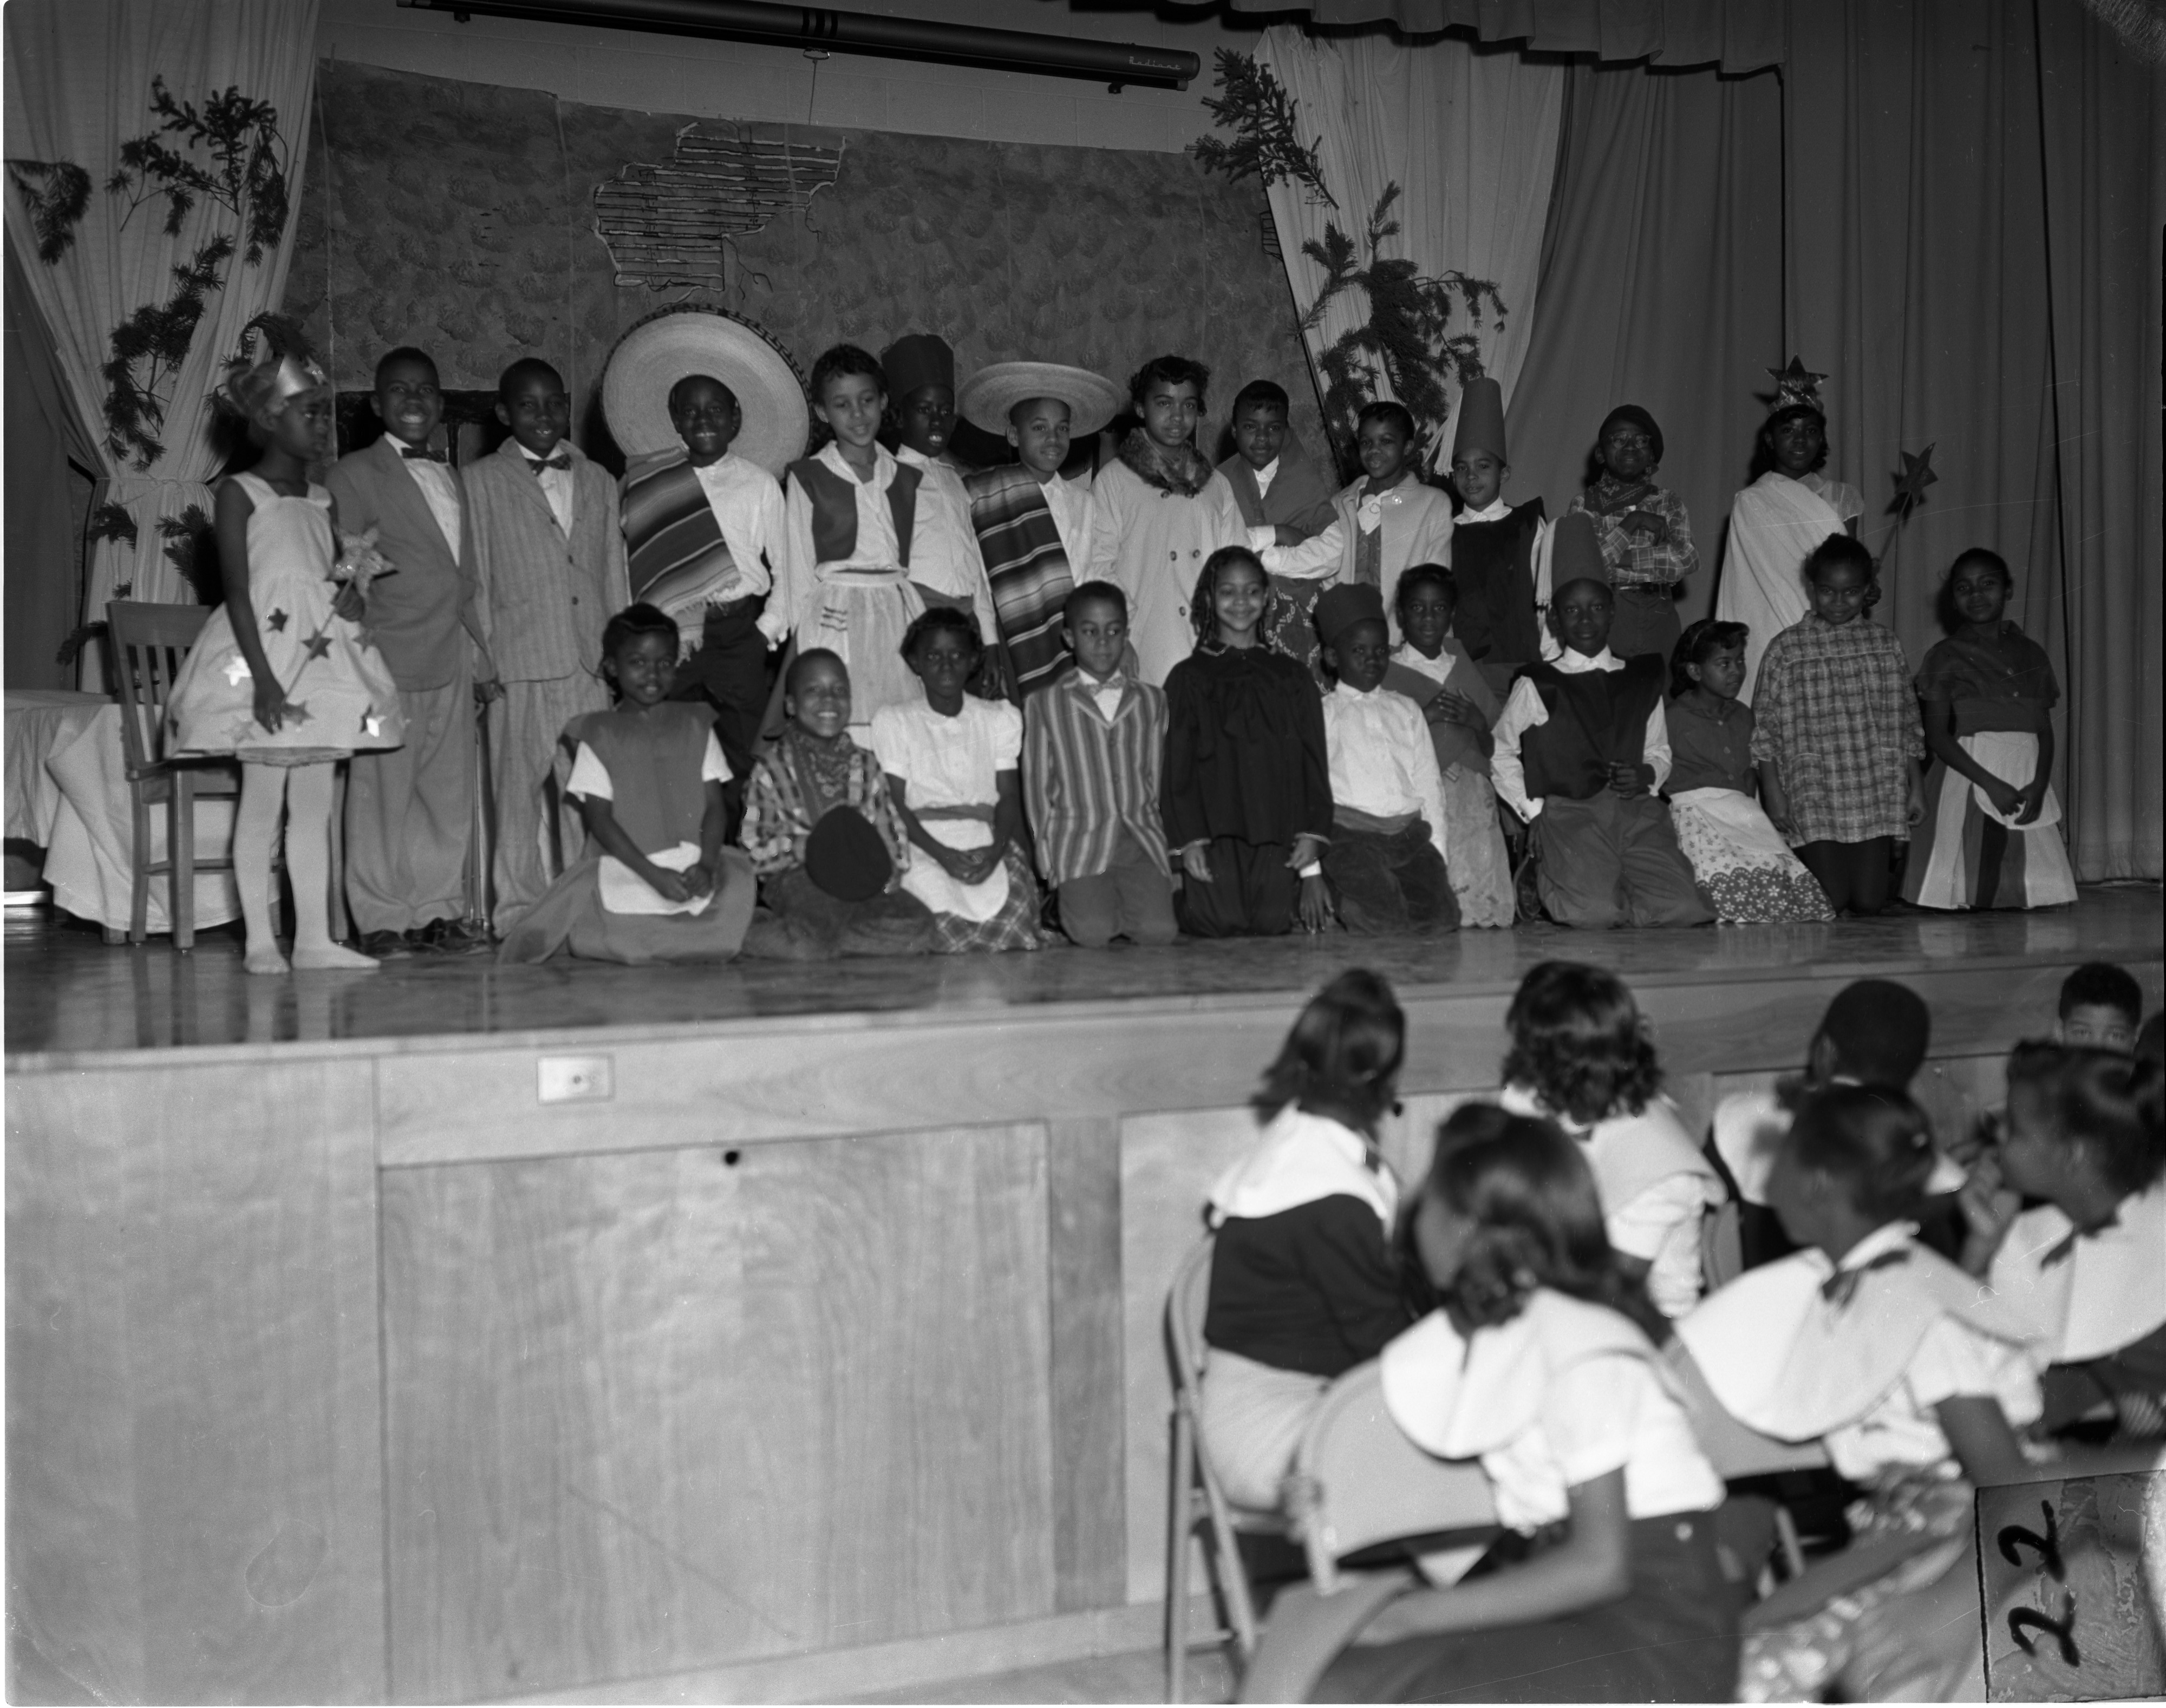 Perry School Students' Christmas Play, December 18, 1959 image